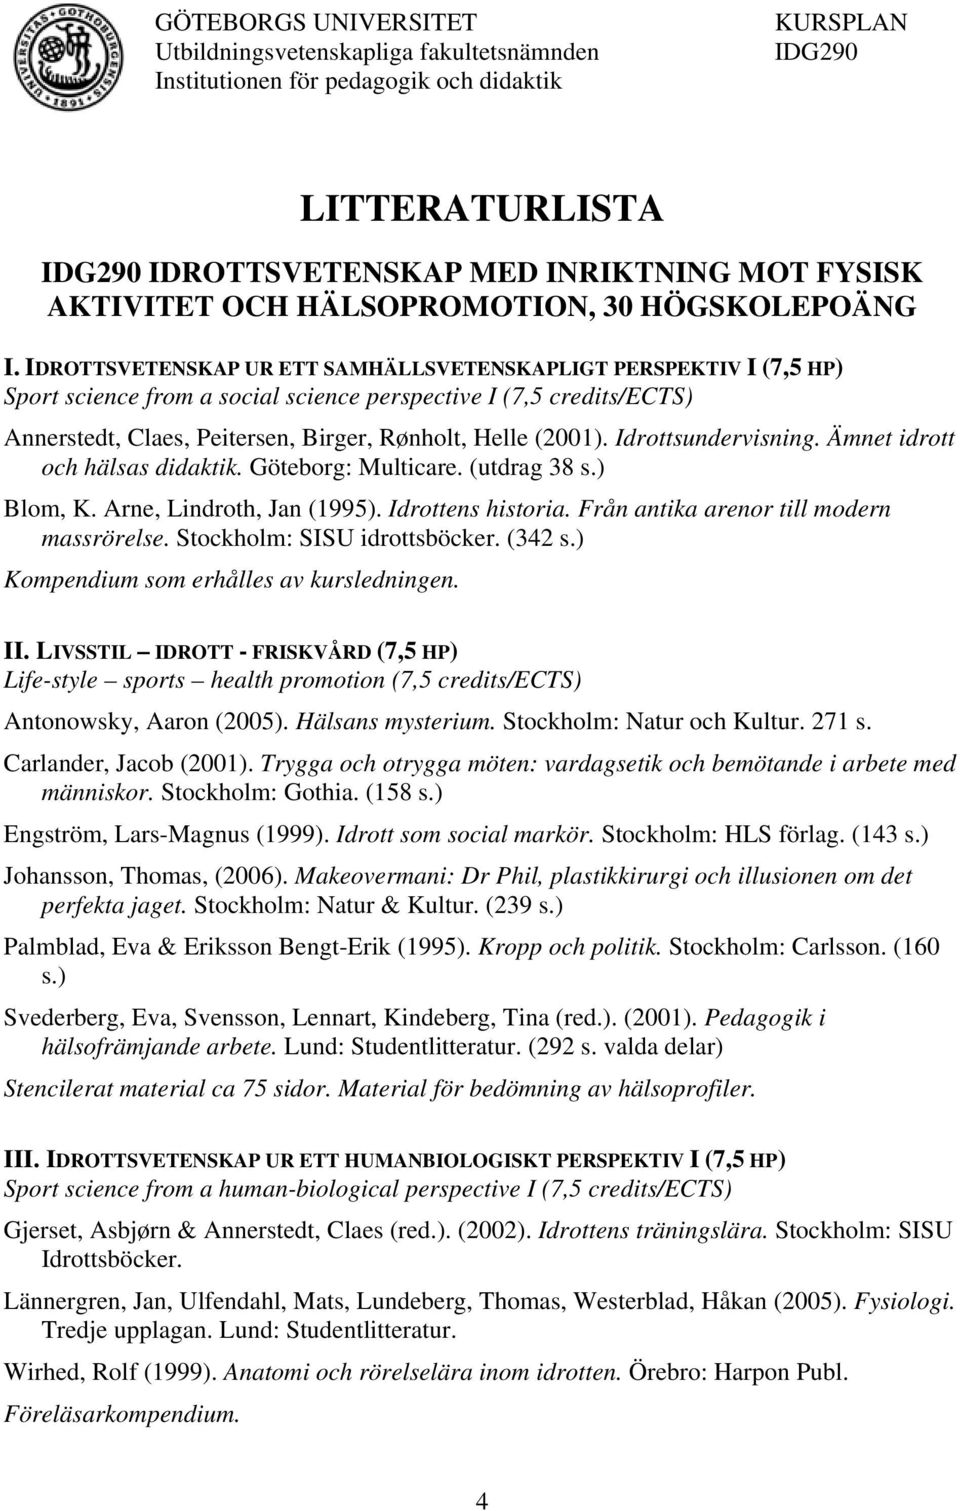 IDROTTSVETENSKAP UR ETT SAMHÄLLSVETENSKAPLIGT PERSPEKTIV I (7,5 HP) Sport science from a social science perspective I (7,5 credits/ects) Annerstedt, Claes, Peitersen, Birger, Rønholt, Helle (2001).